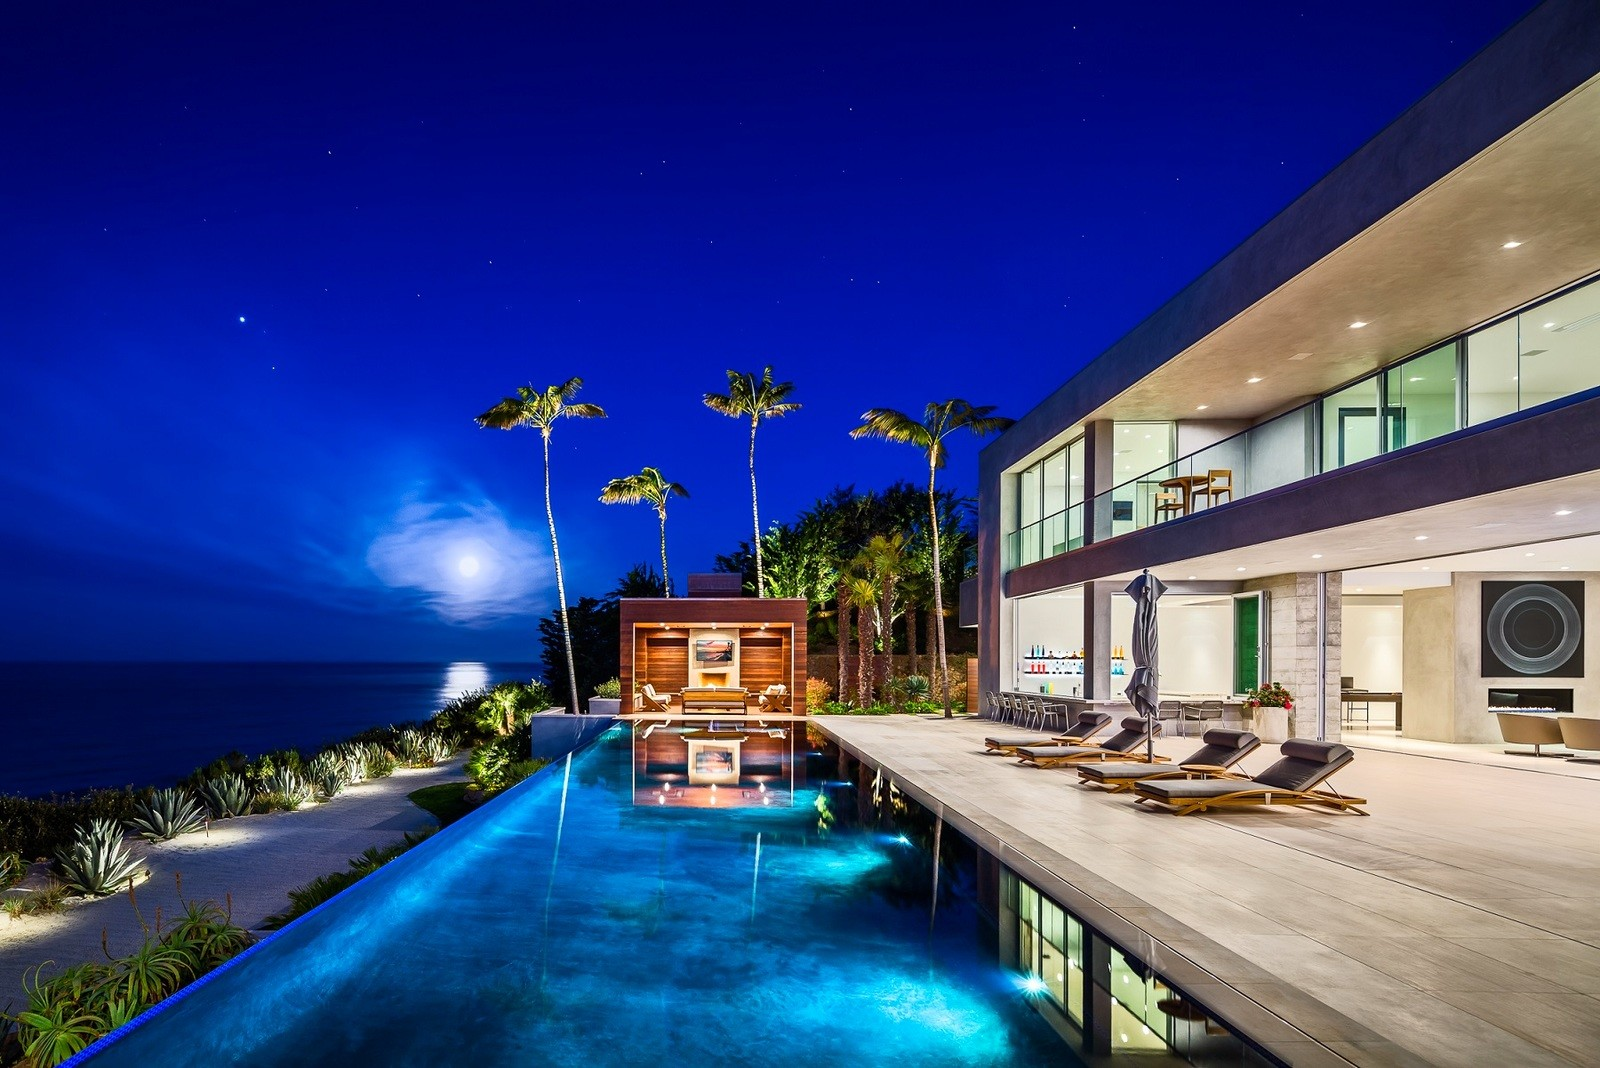 Mansion in Malibu for $ 27.9 million